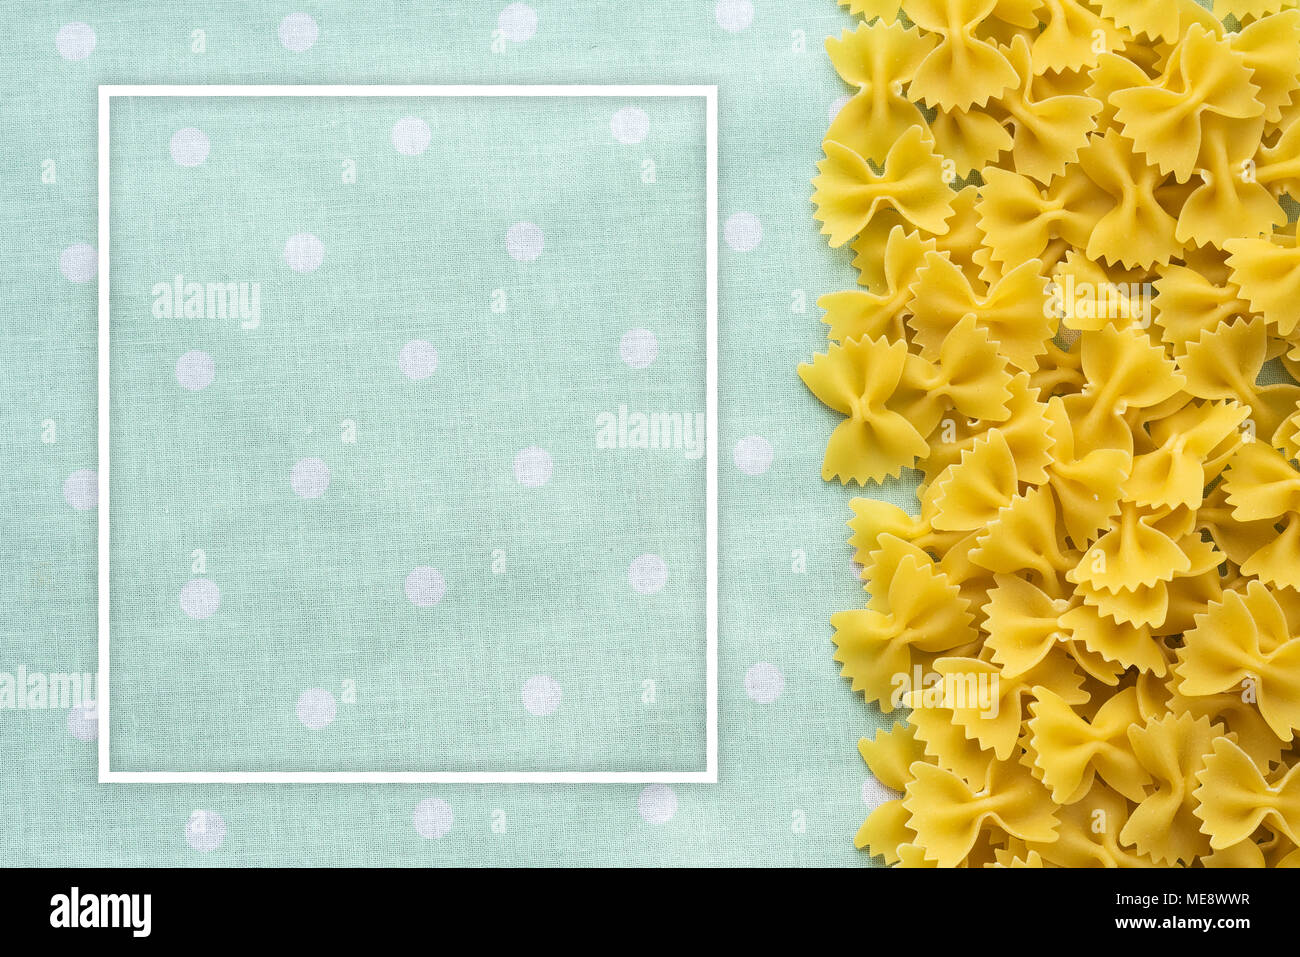 farfalle Raw farfallini Beautiful decomposed pasta with the right, from the side to the green peas texture. Close-up view from the top. With white fra - Stock Image